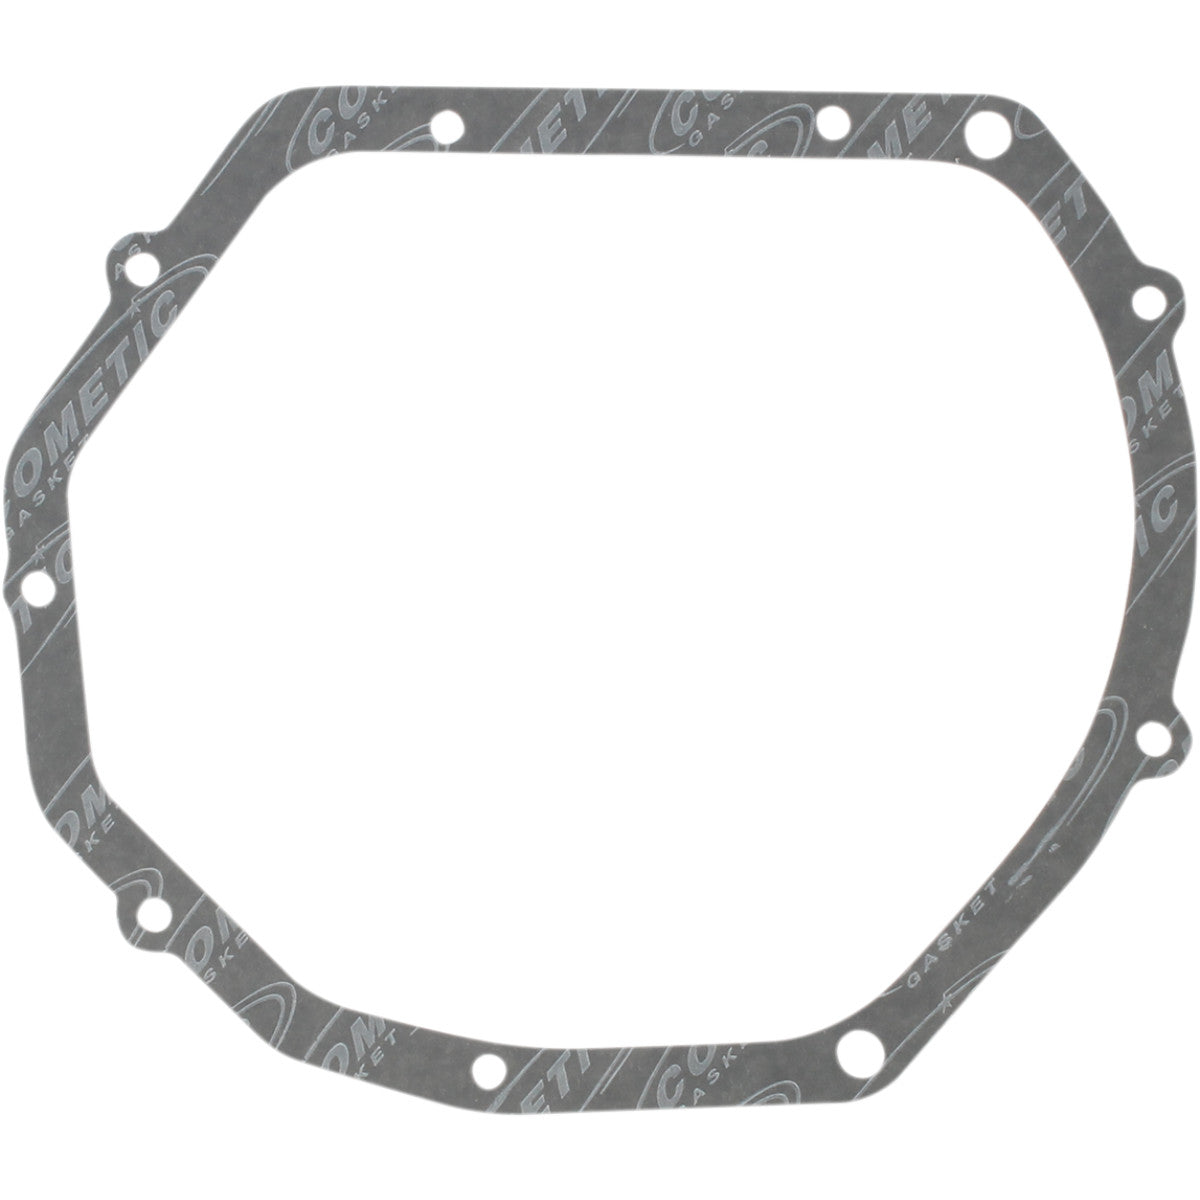 0934-3974 COMETIC Clutch Cover Gasket GASKET CLUTCH SUZUKI